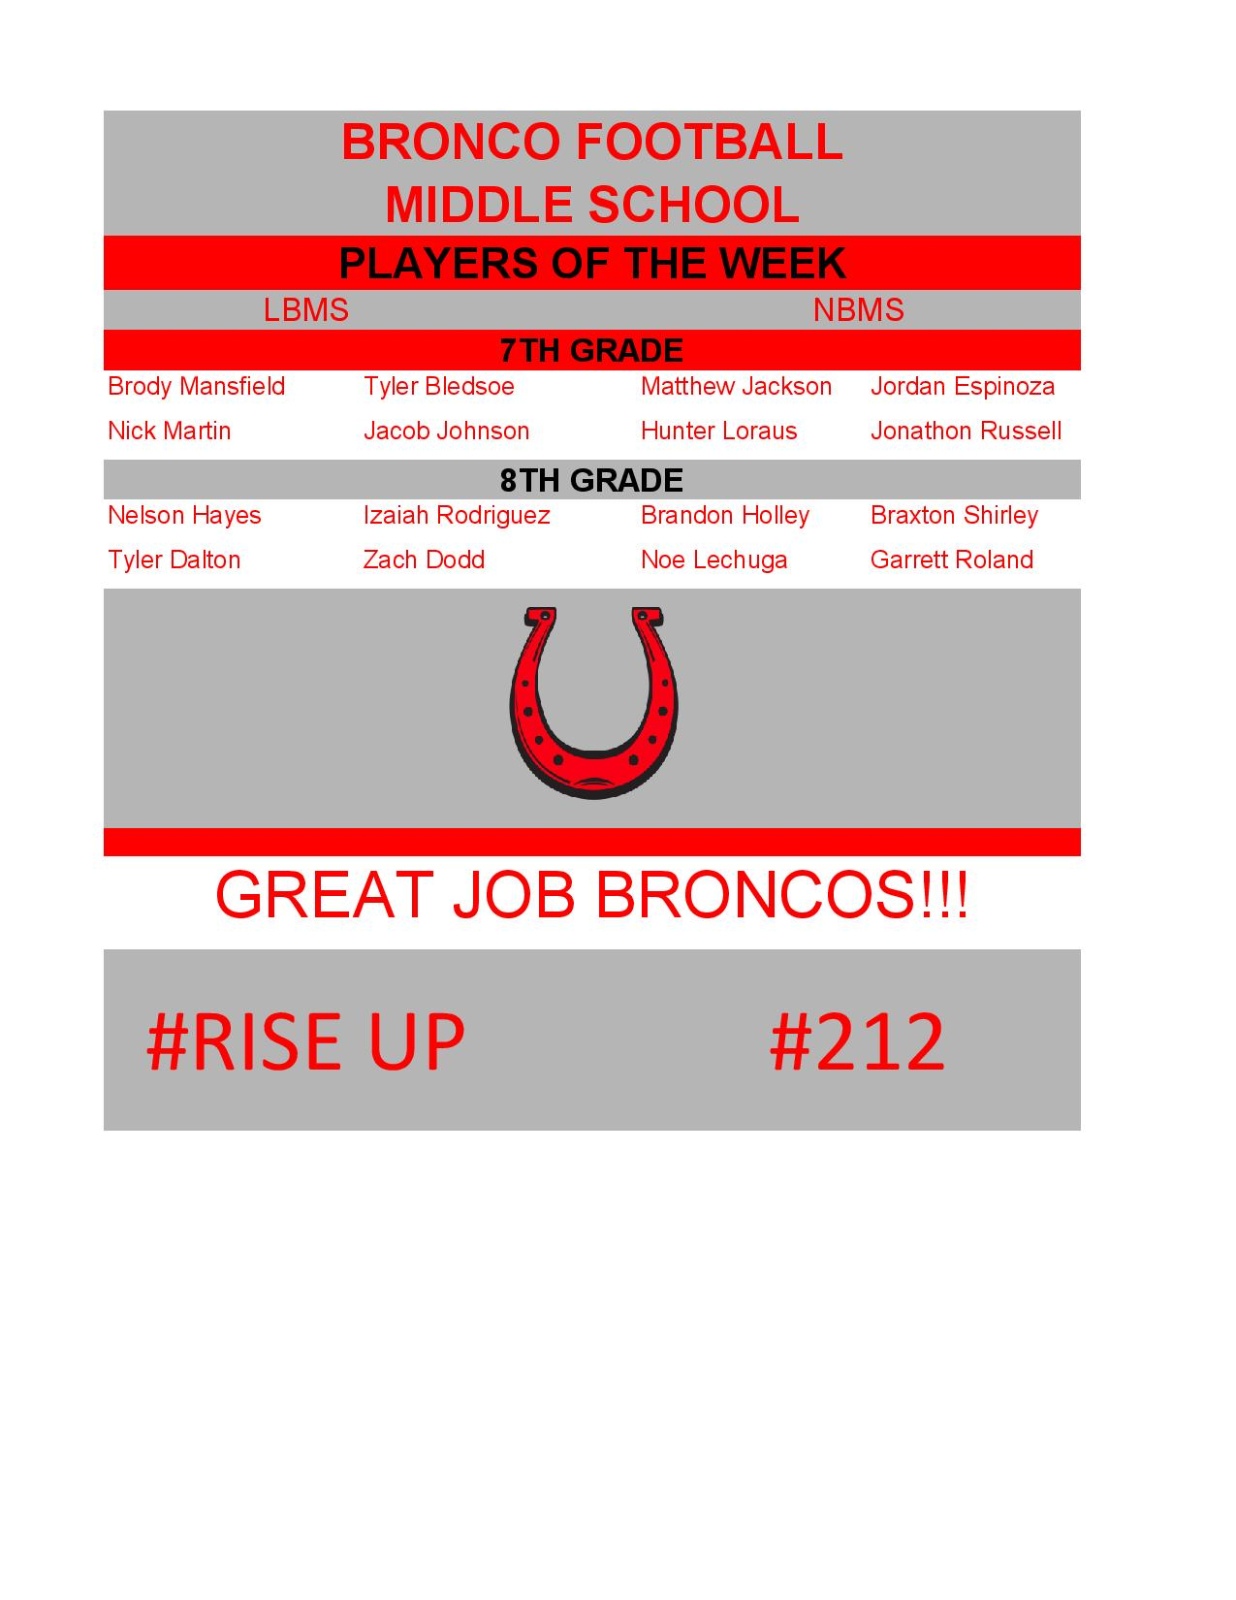 Middle School Bronco Football Players of the Week